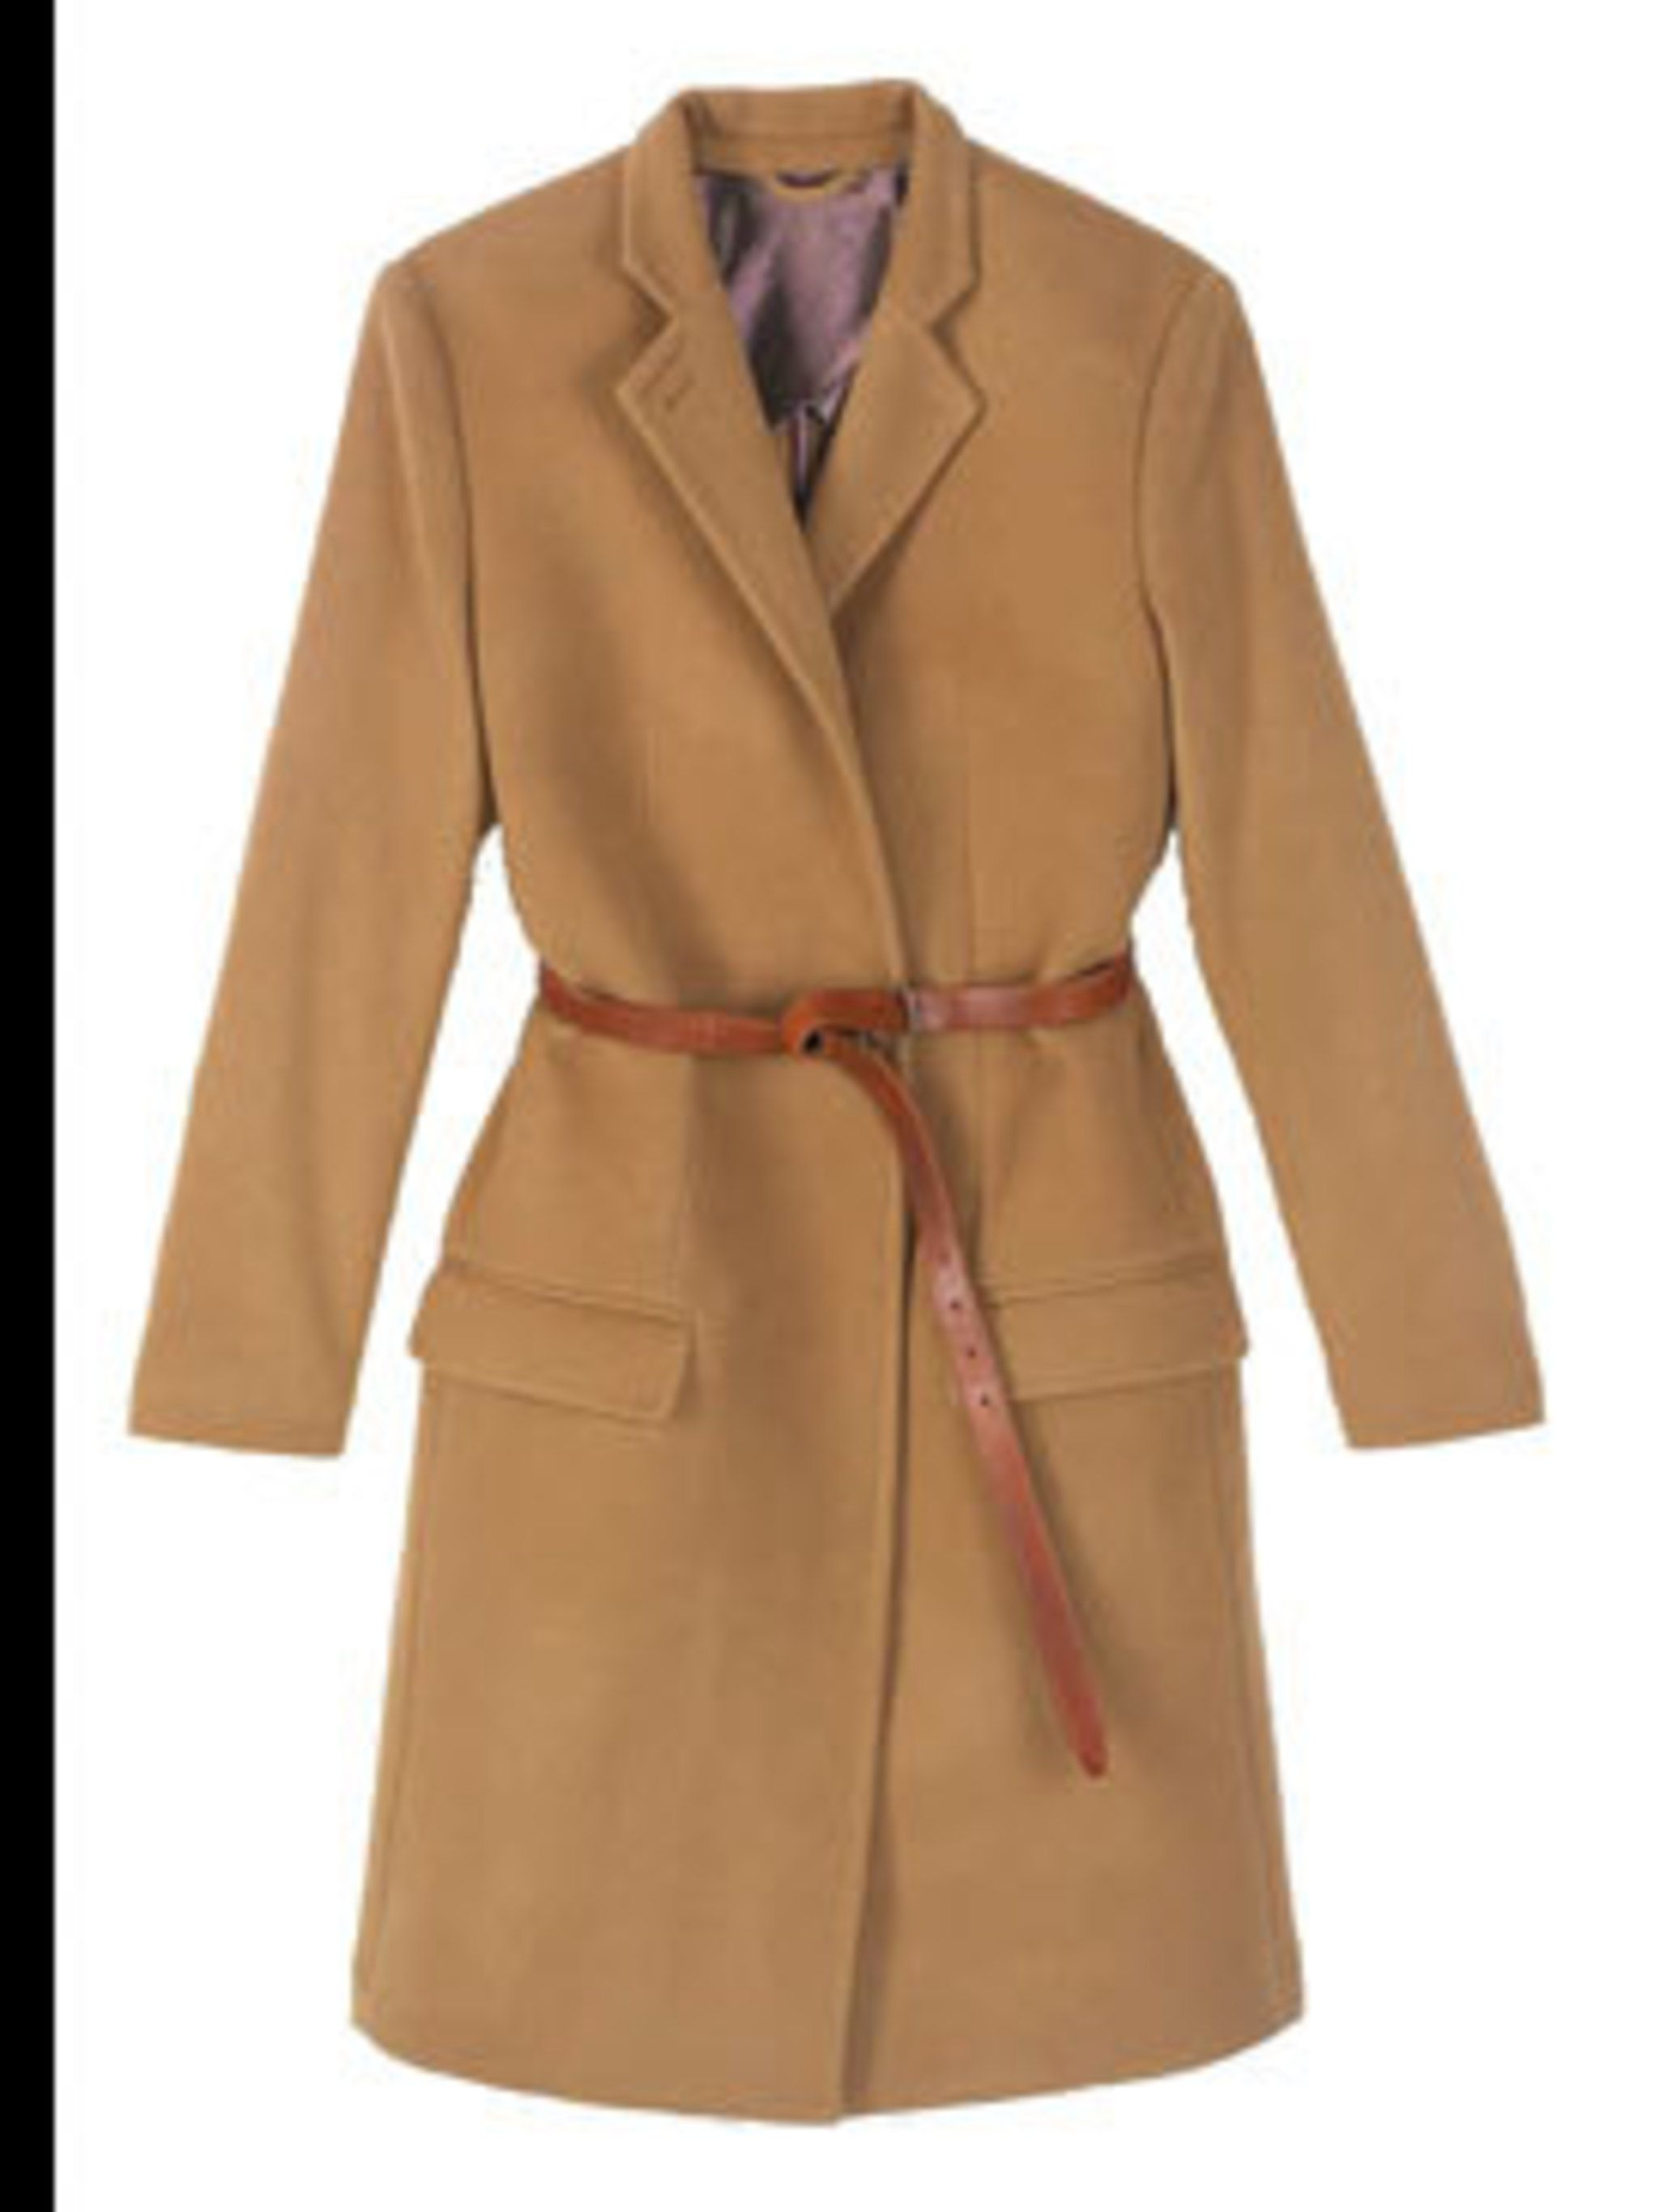 "<p>Camel coat with brown leather belt, £310, by <a href=""http://www.acnestudios.com/"">Acne</a></p>"